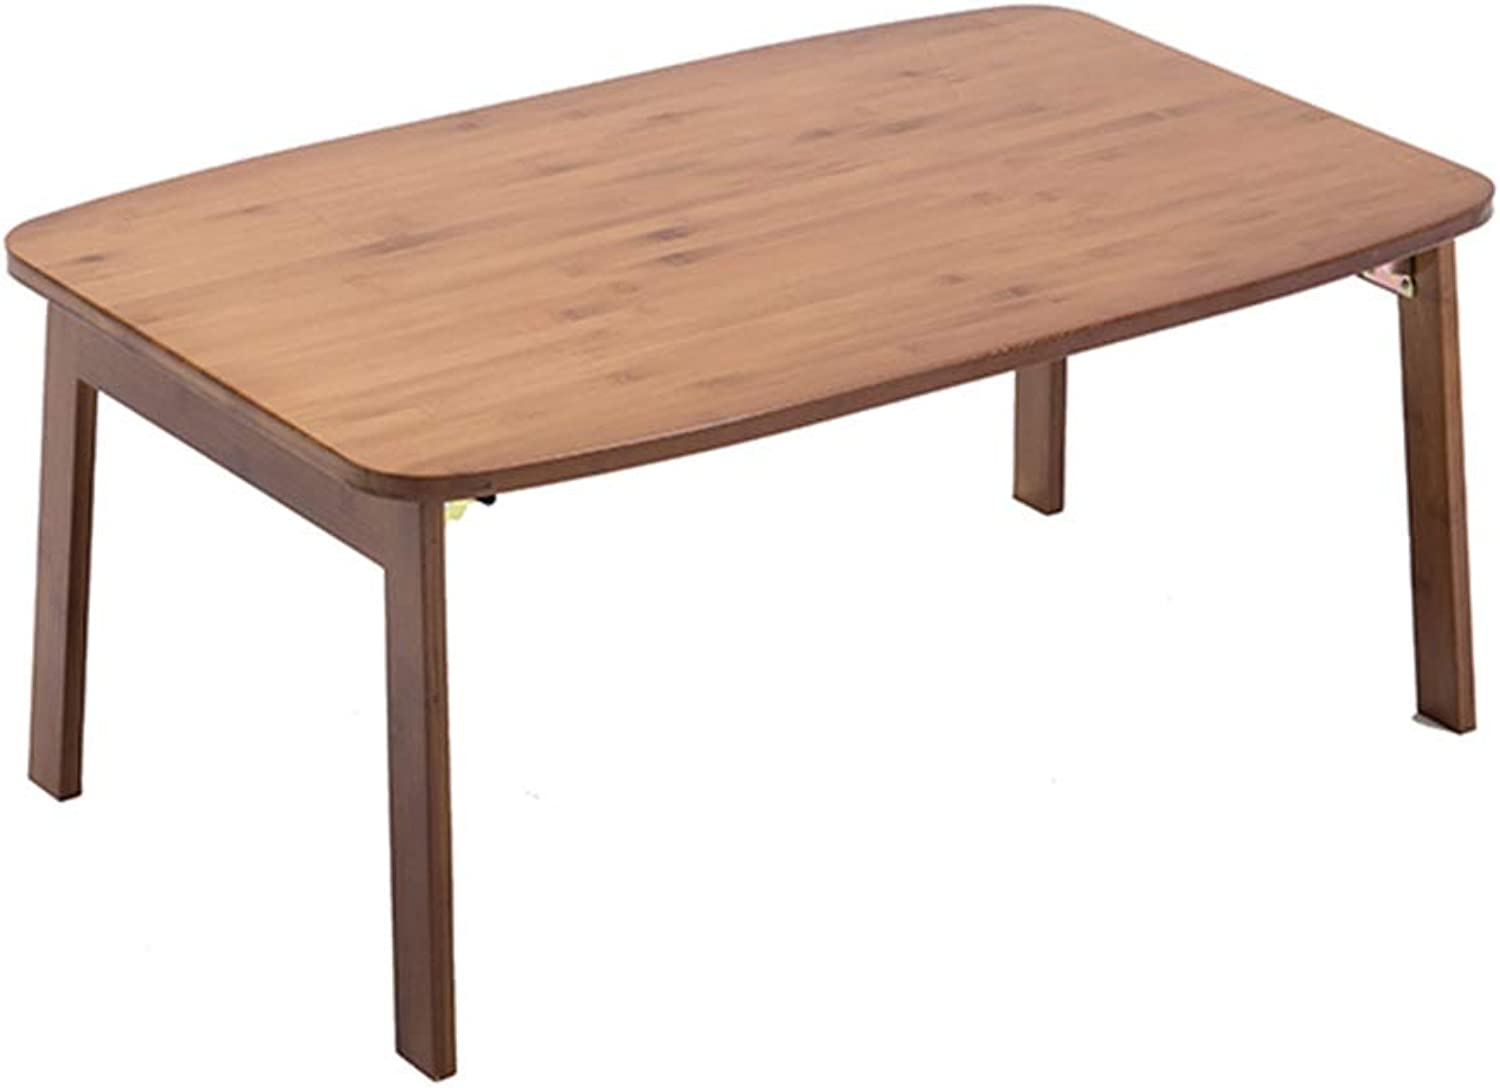 Bamboo Folding Coffee Table Simple Window Table Bed Lazy Table Living Room Coffee Table Home Low Table Restaurant Small Table Bedroom Computer Table Coffee Tables ( color   Brown , Size   604026cm )